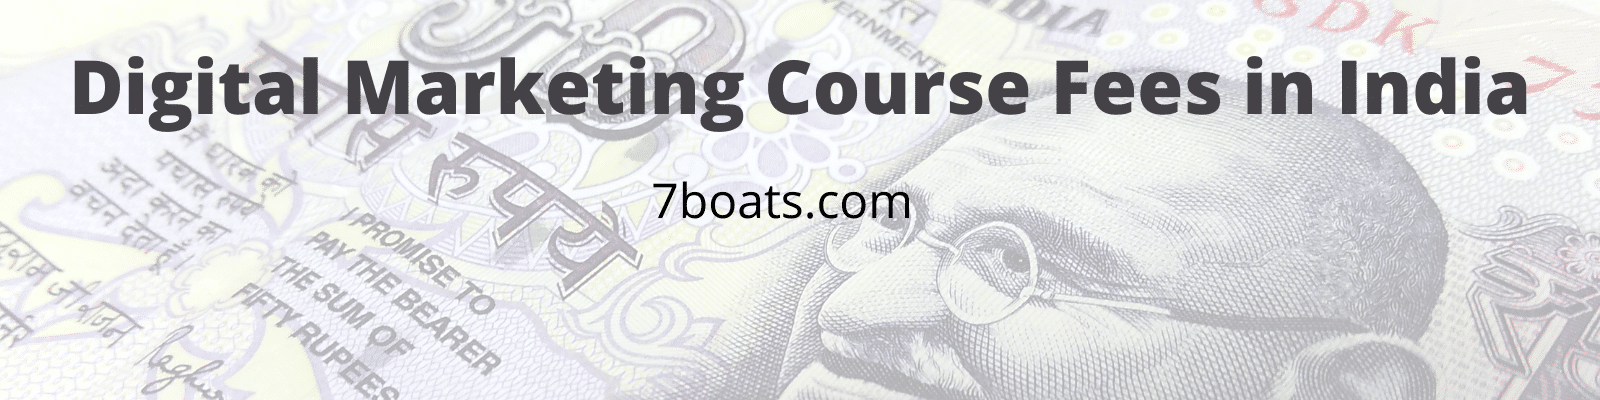 digital marketing course fees in india